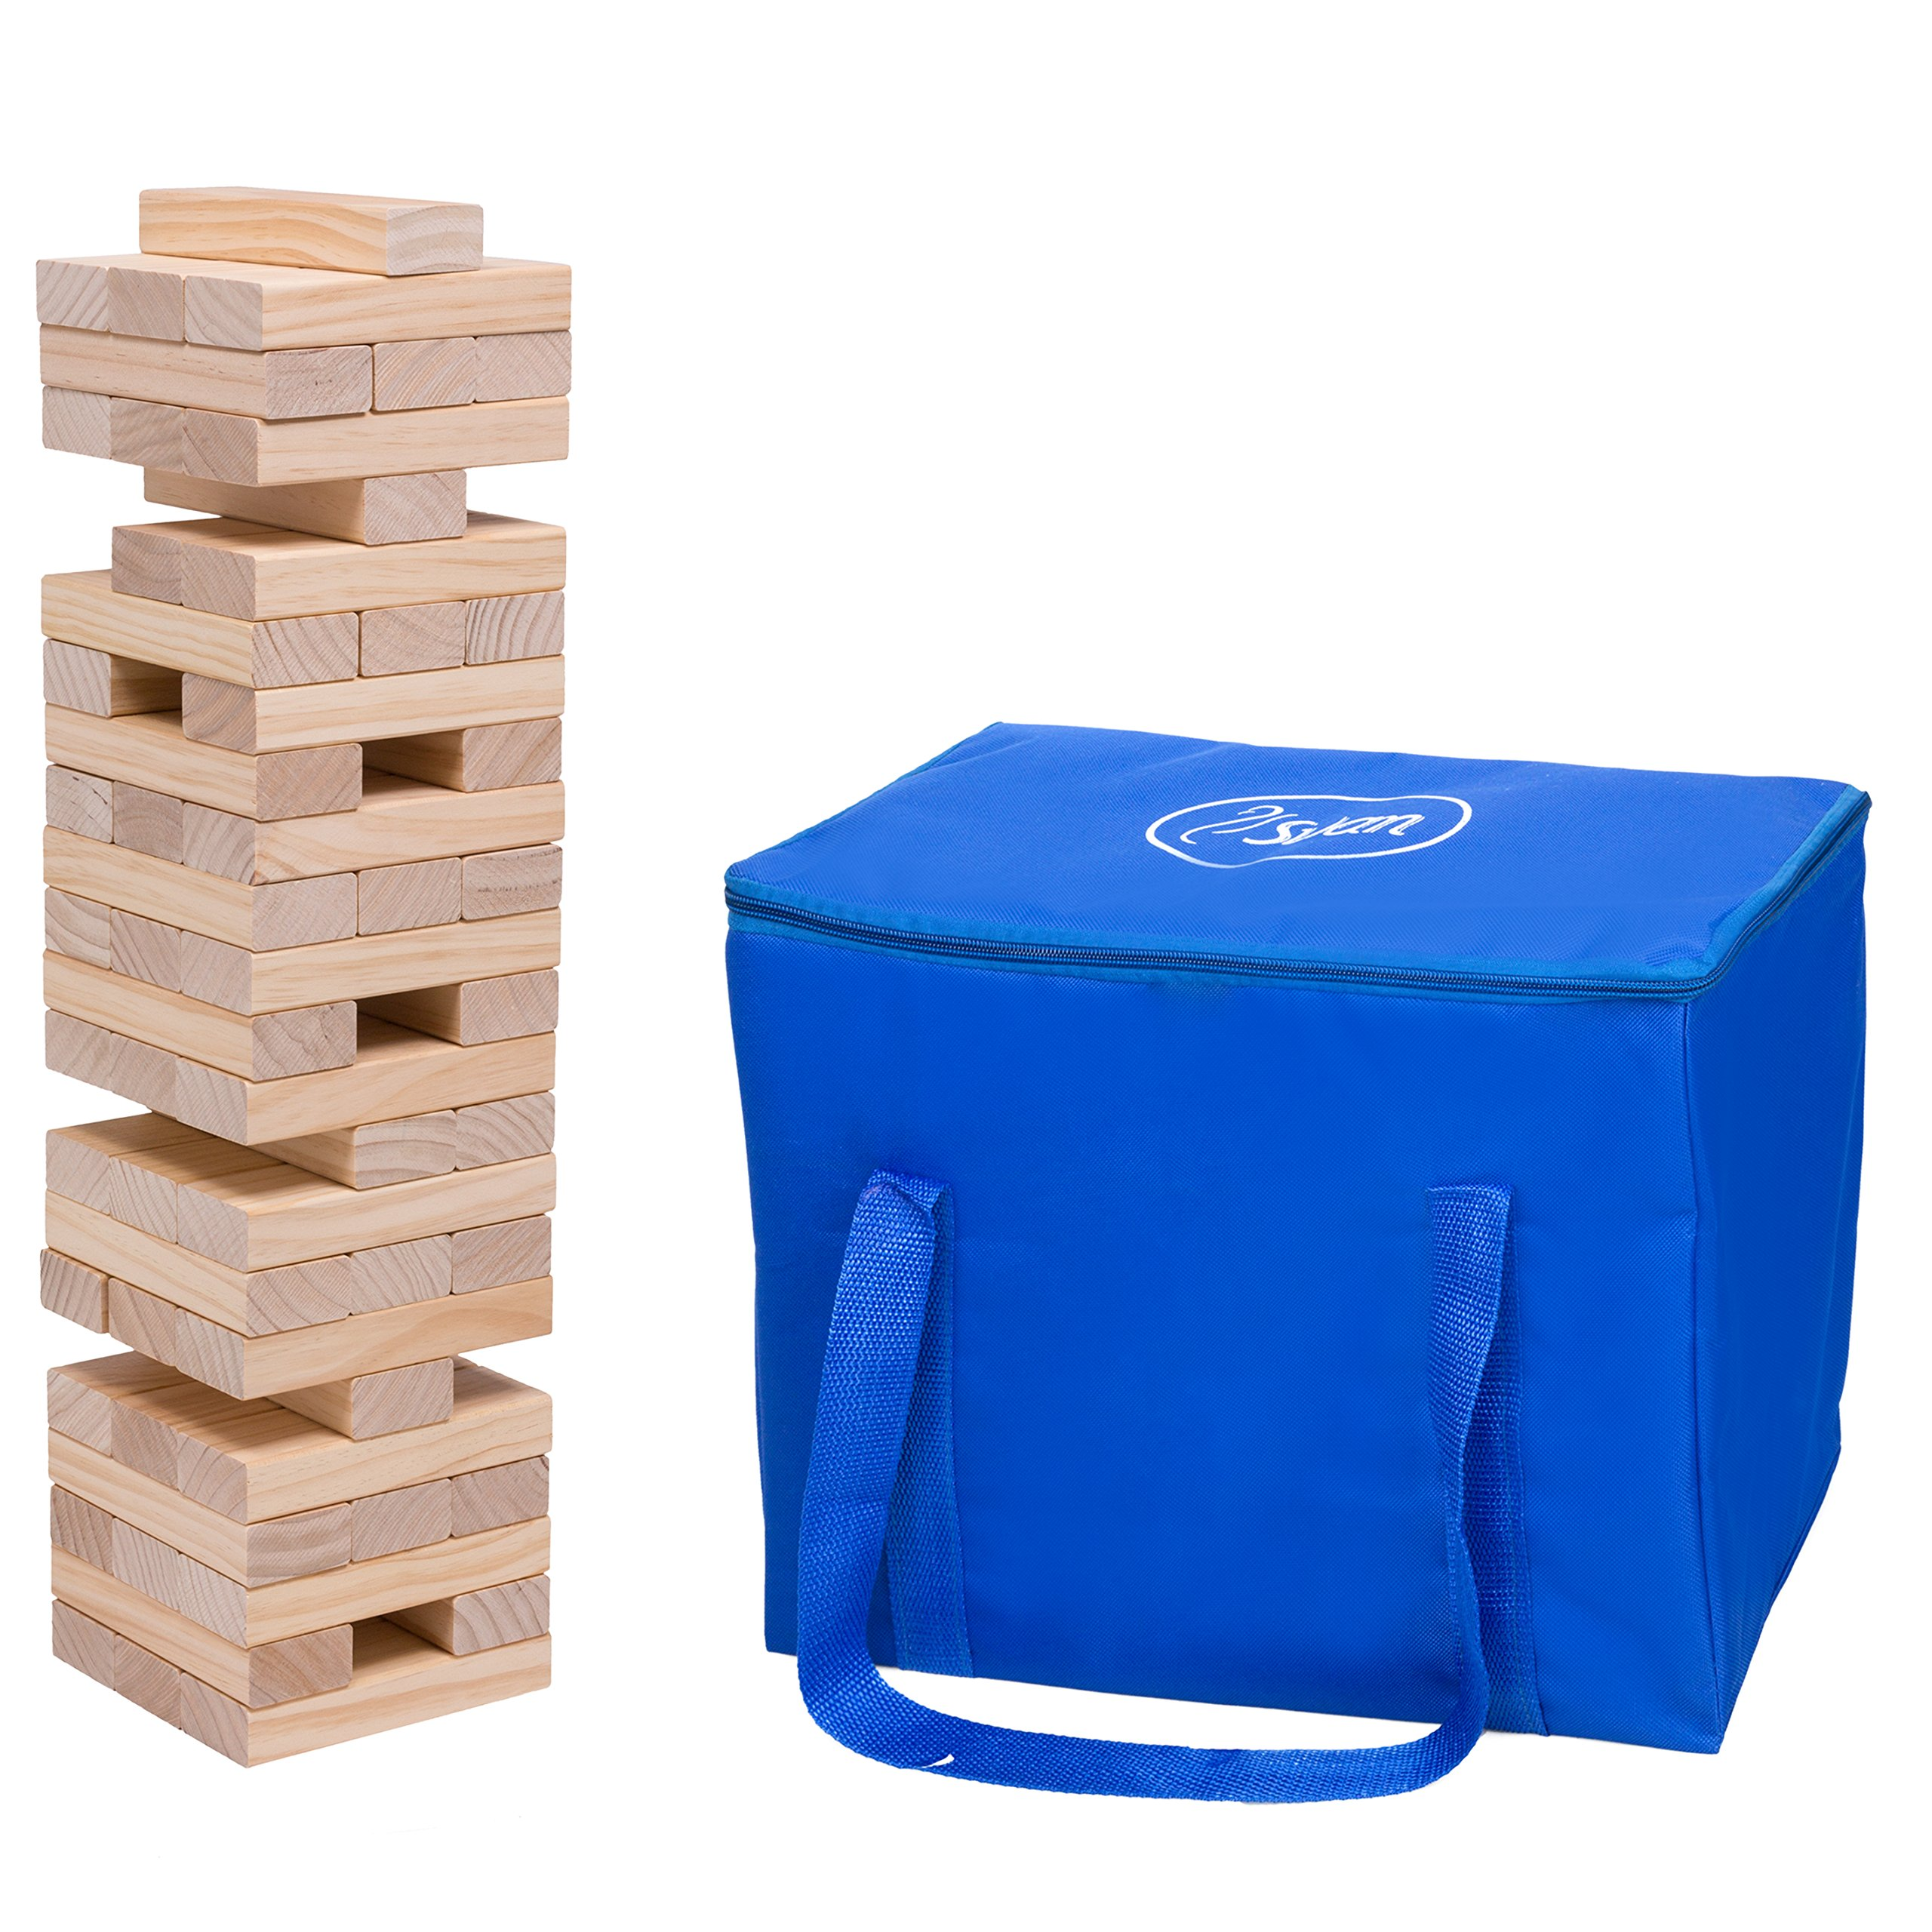 Giant Tumbling Stacking Game - 60pc Jumbo Set w Carrying Bag - Wood Tower Builds up to 5 Feet Tall